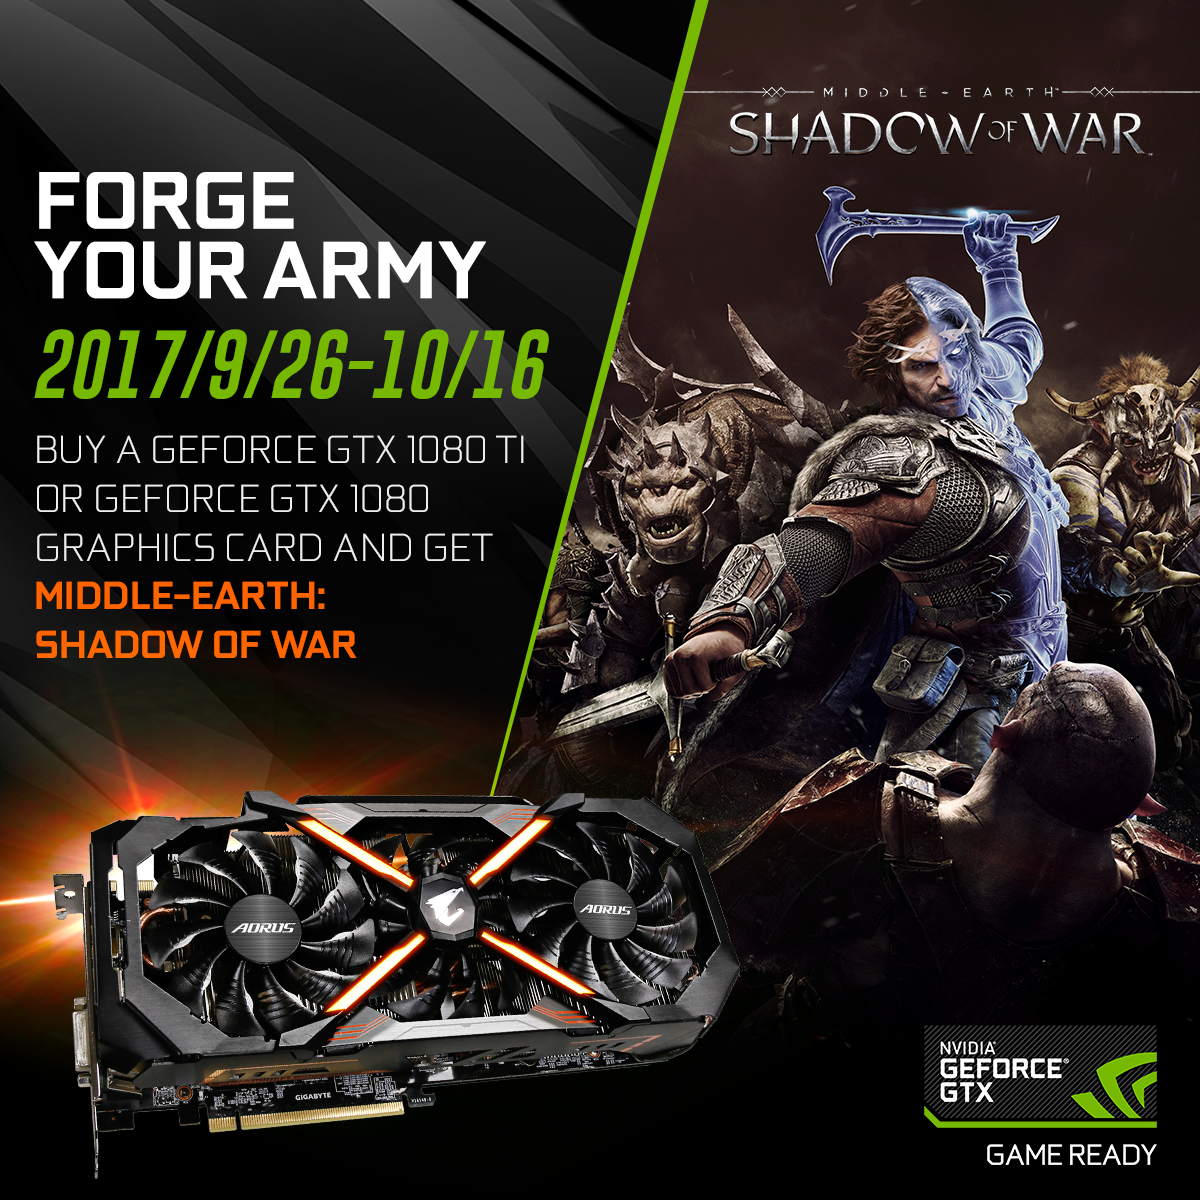 Buy a GeForce GTX 1080 Ti or GeForce GTX 1080 Graphics Card and get Middle-earth: Shadow of War